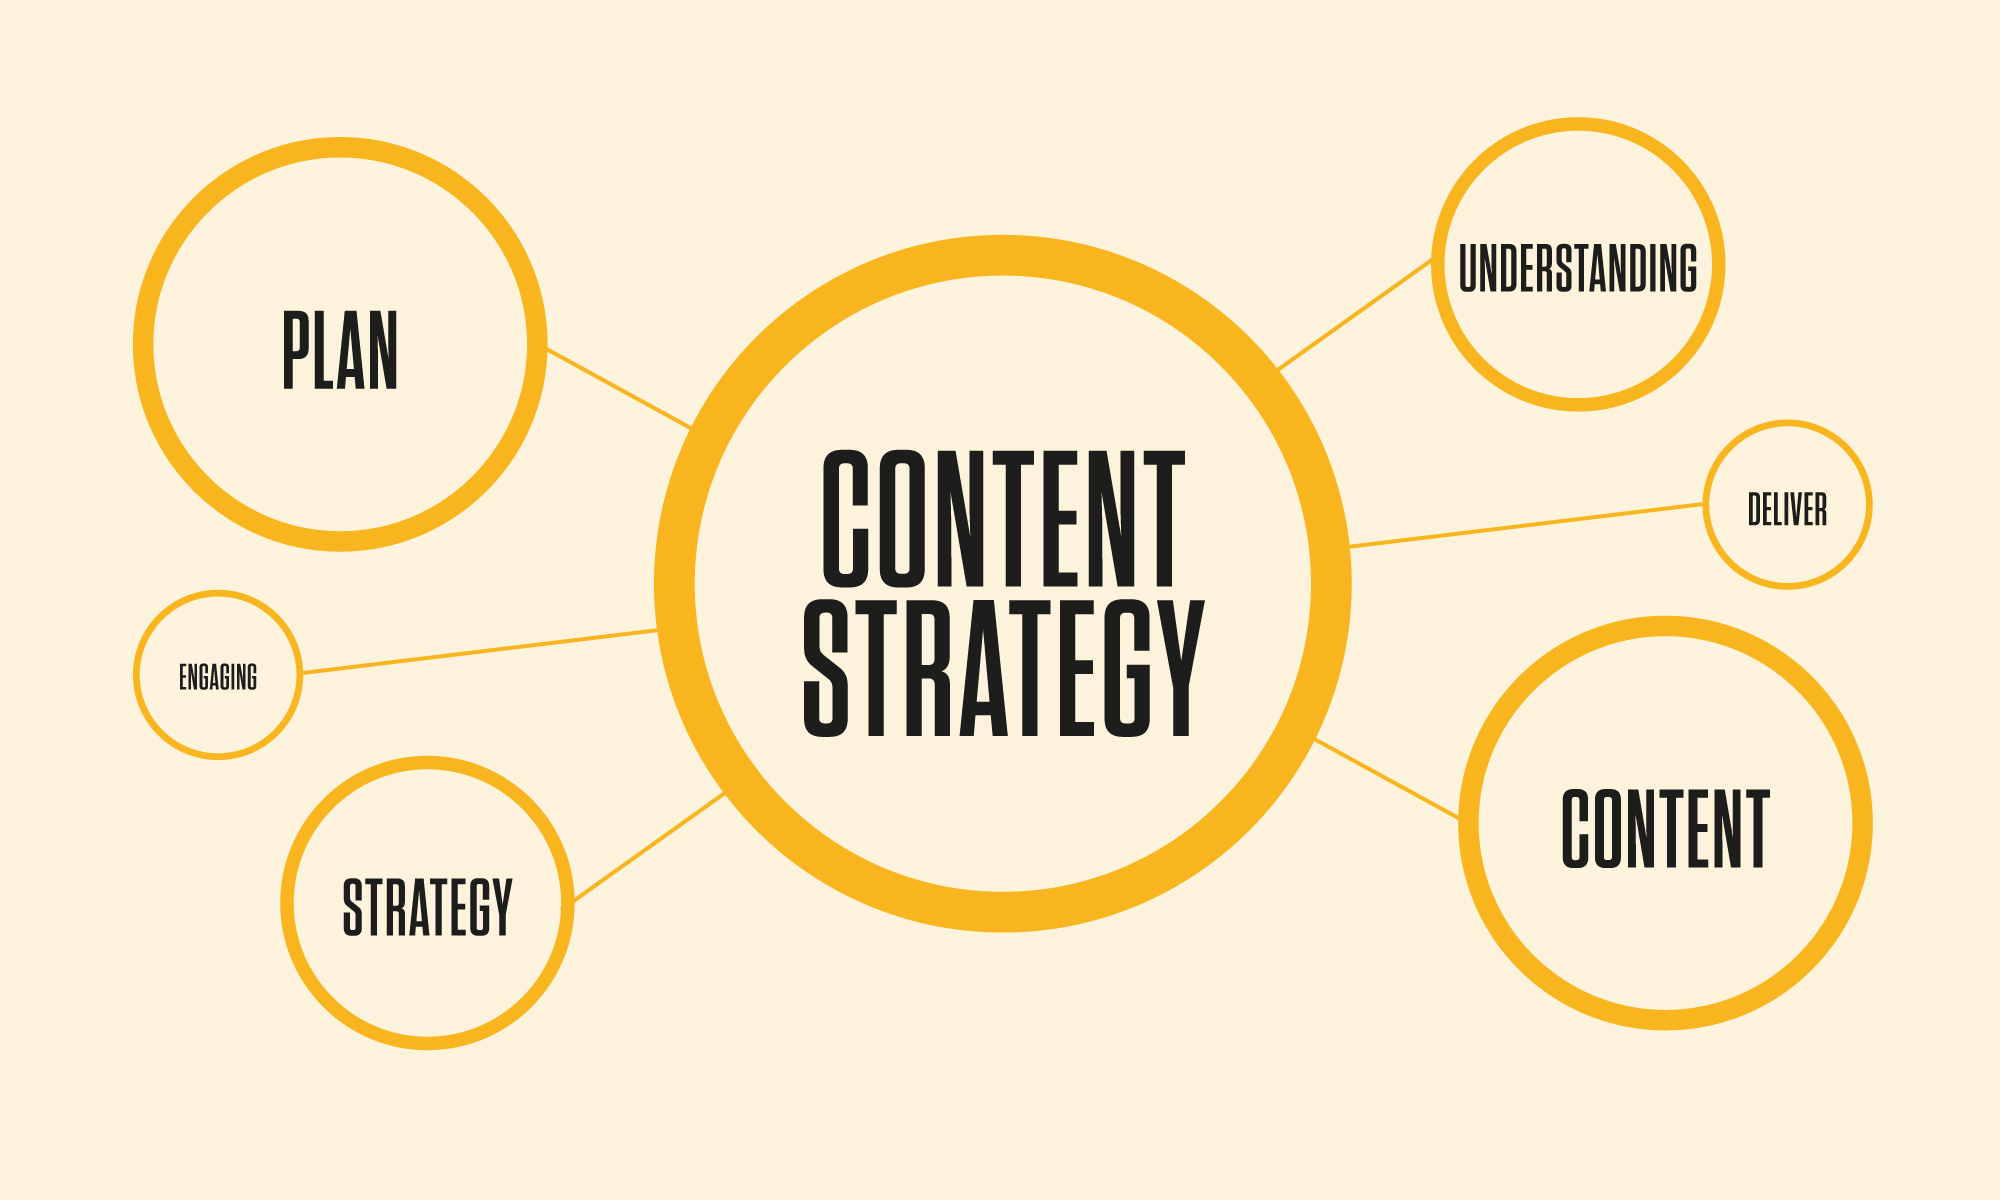 Content strategy is important with social media management